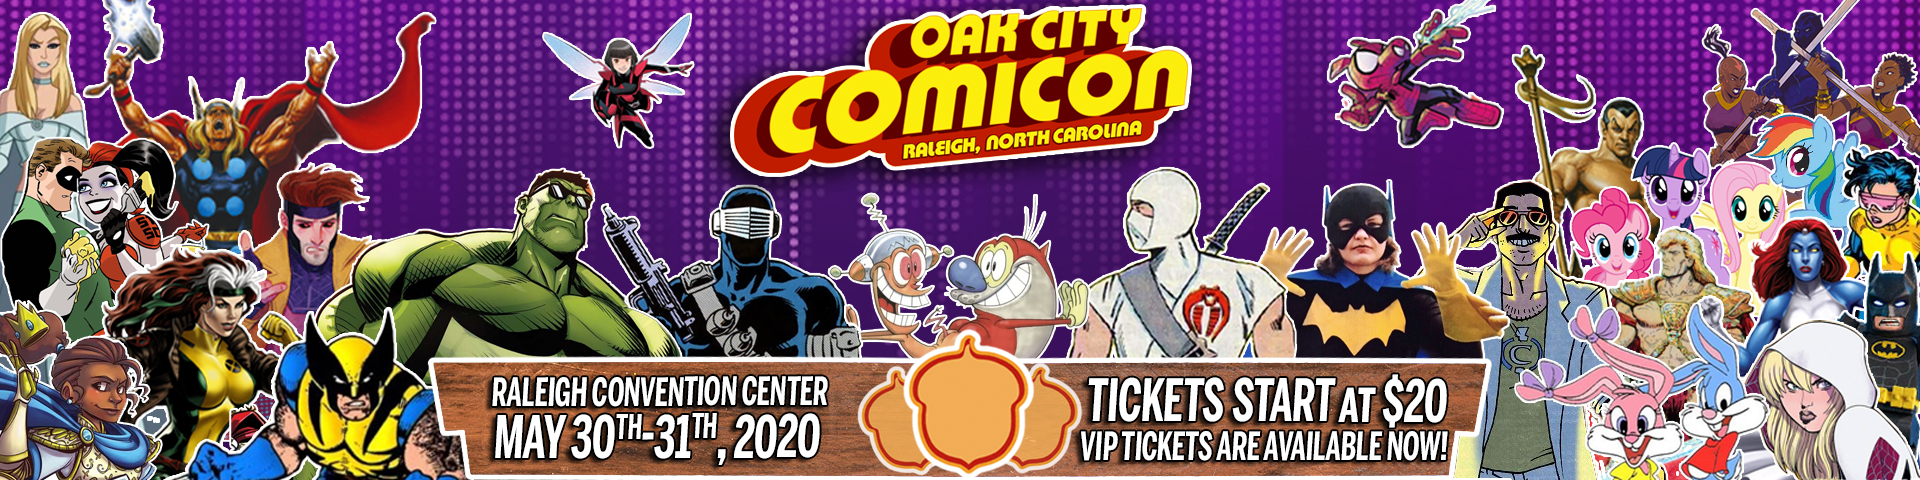 OAK CITY COMICON